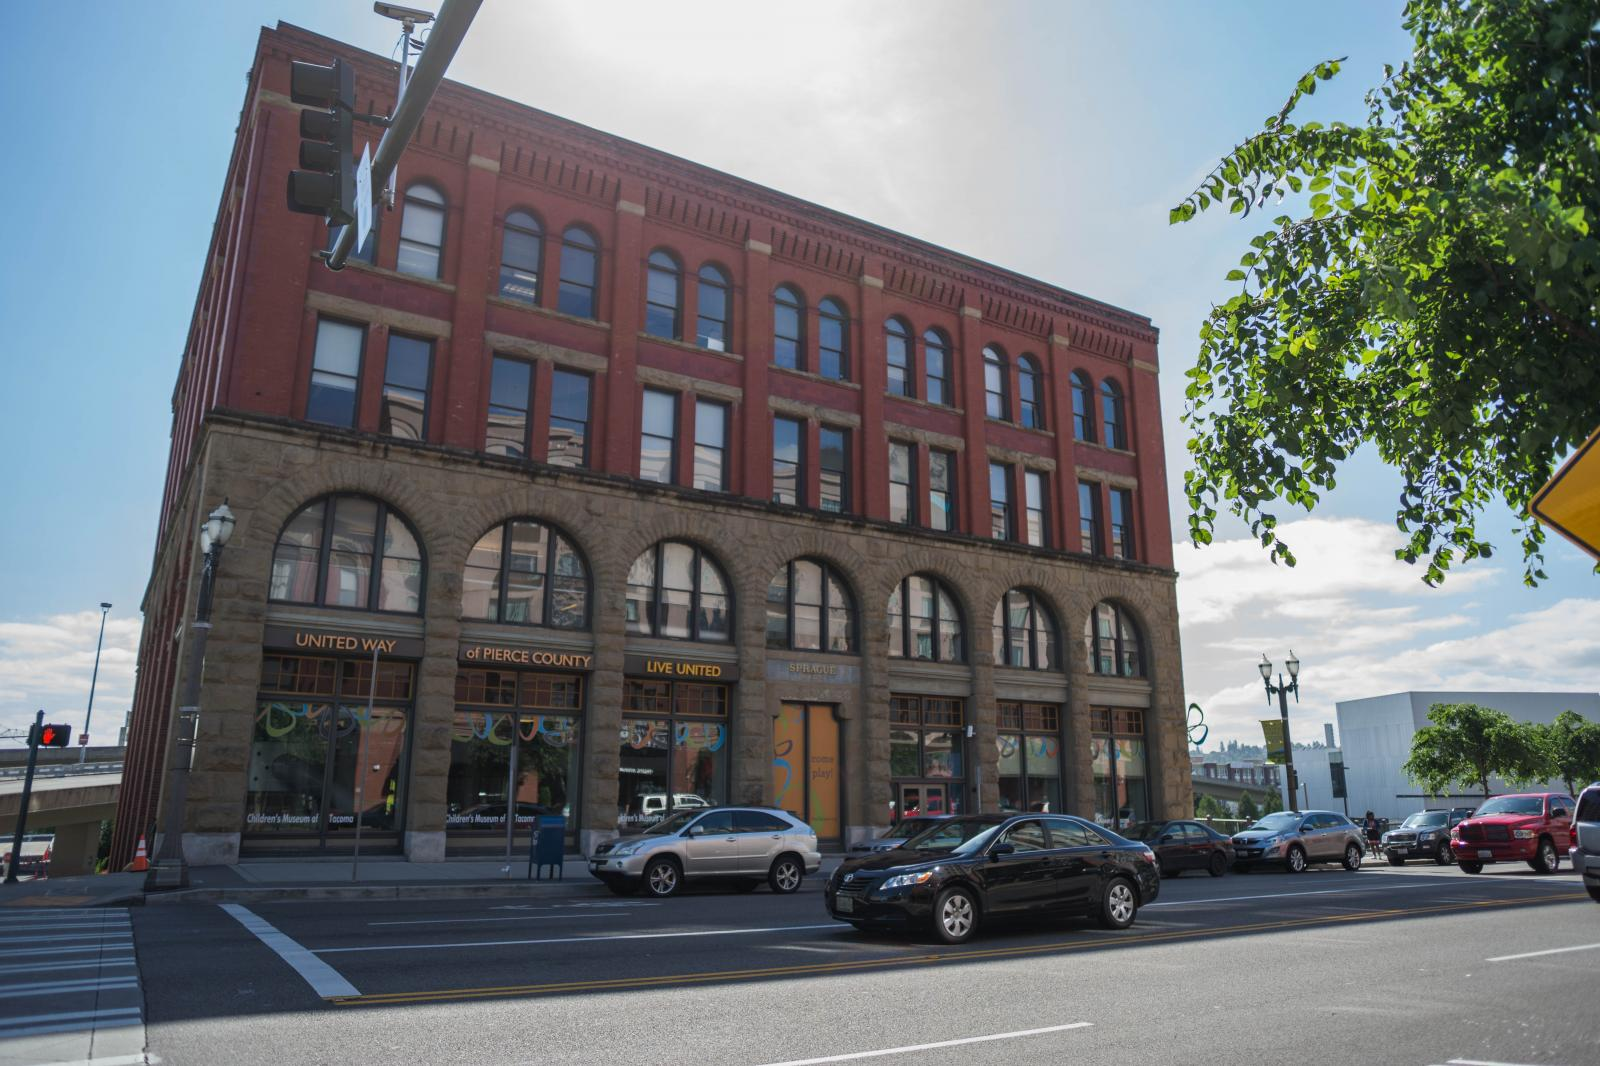 Sprague Building, a four story historic warehouse now housing the Tacoma Children